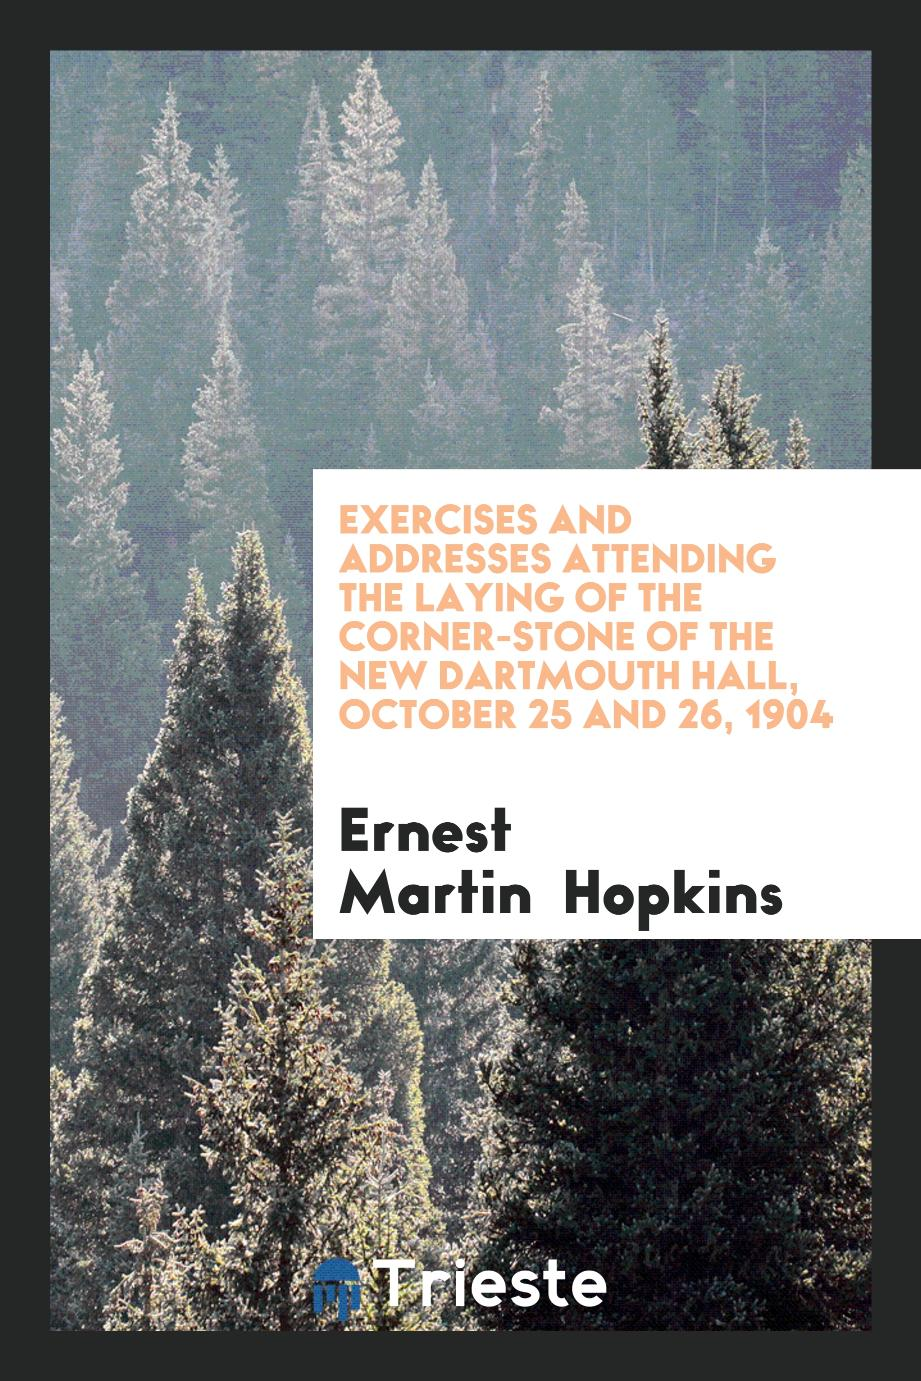 Exercises and Addresses Attending the Laying of the Corner-Stone of the New Dartmouth Hall, October 25 and 26, 1904